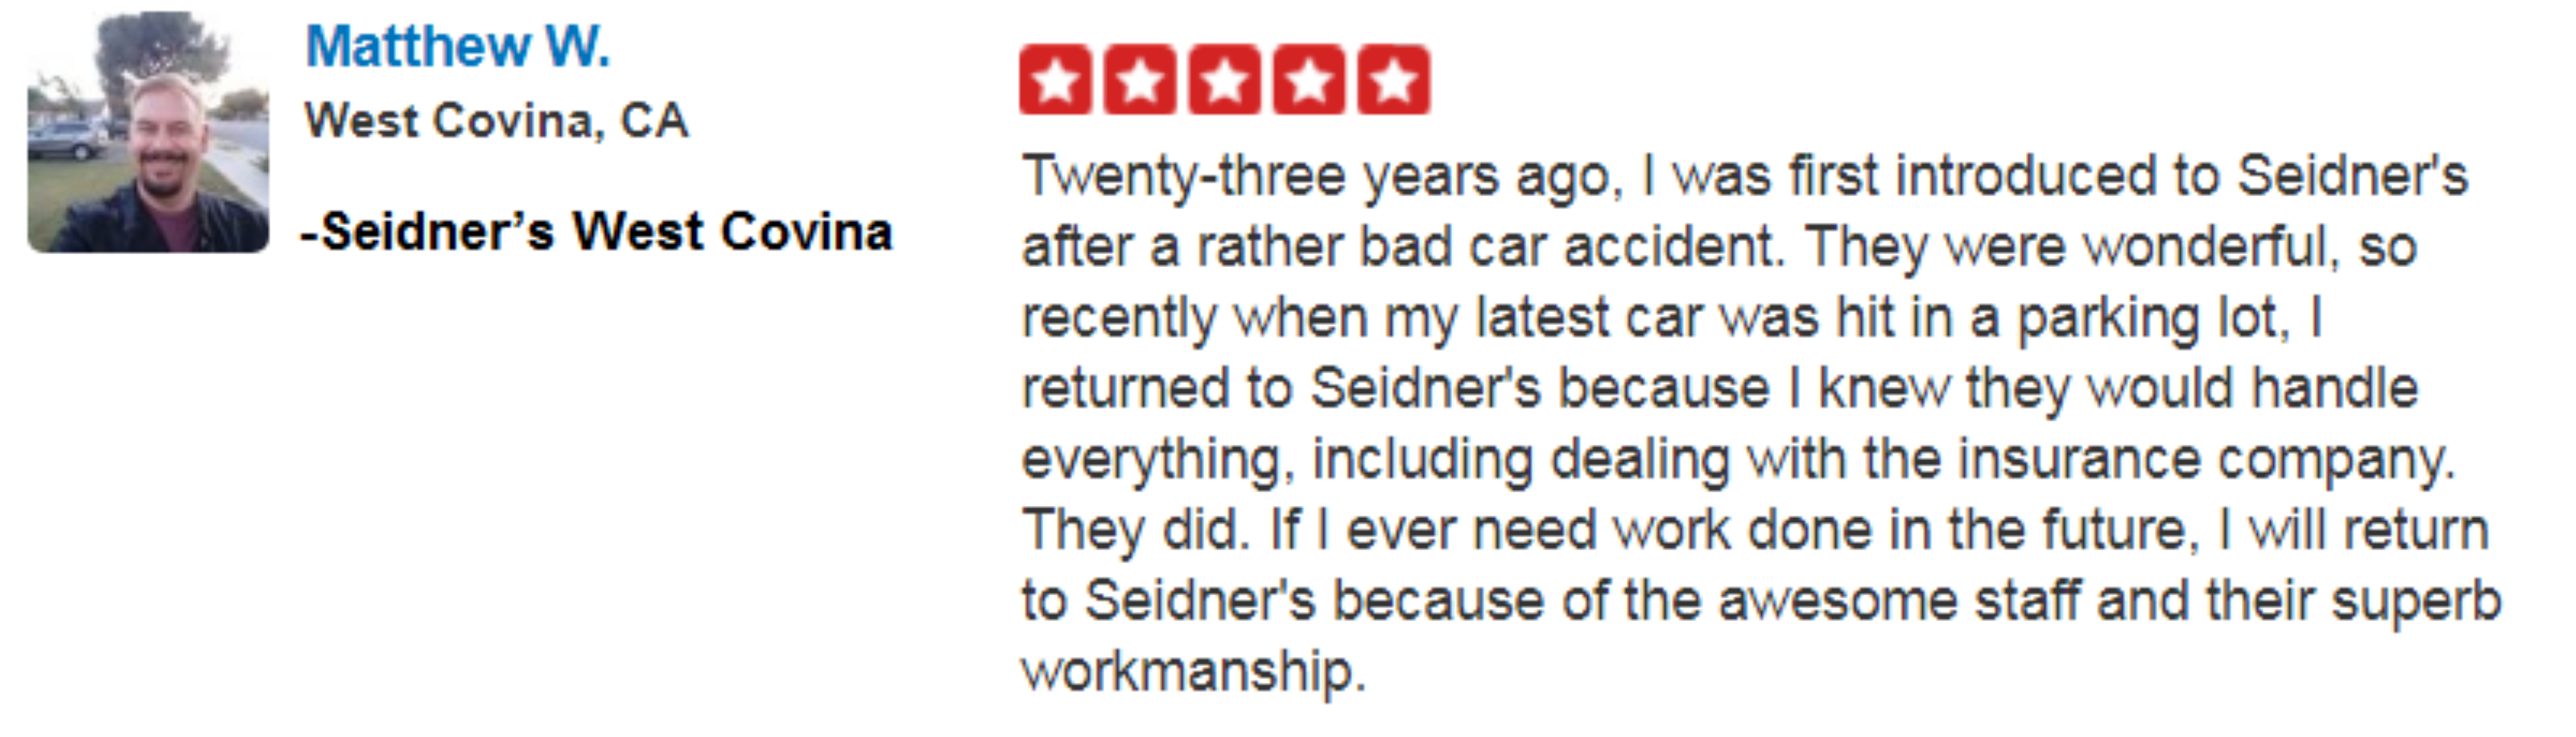 Matthew W. from Seidner's West Covina